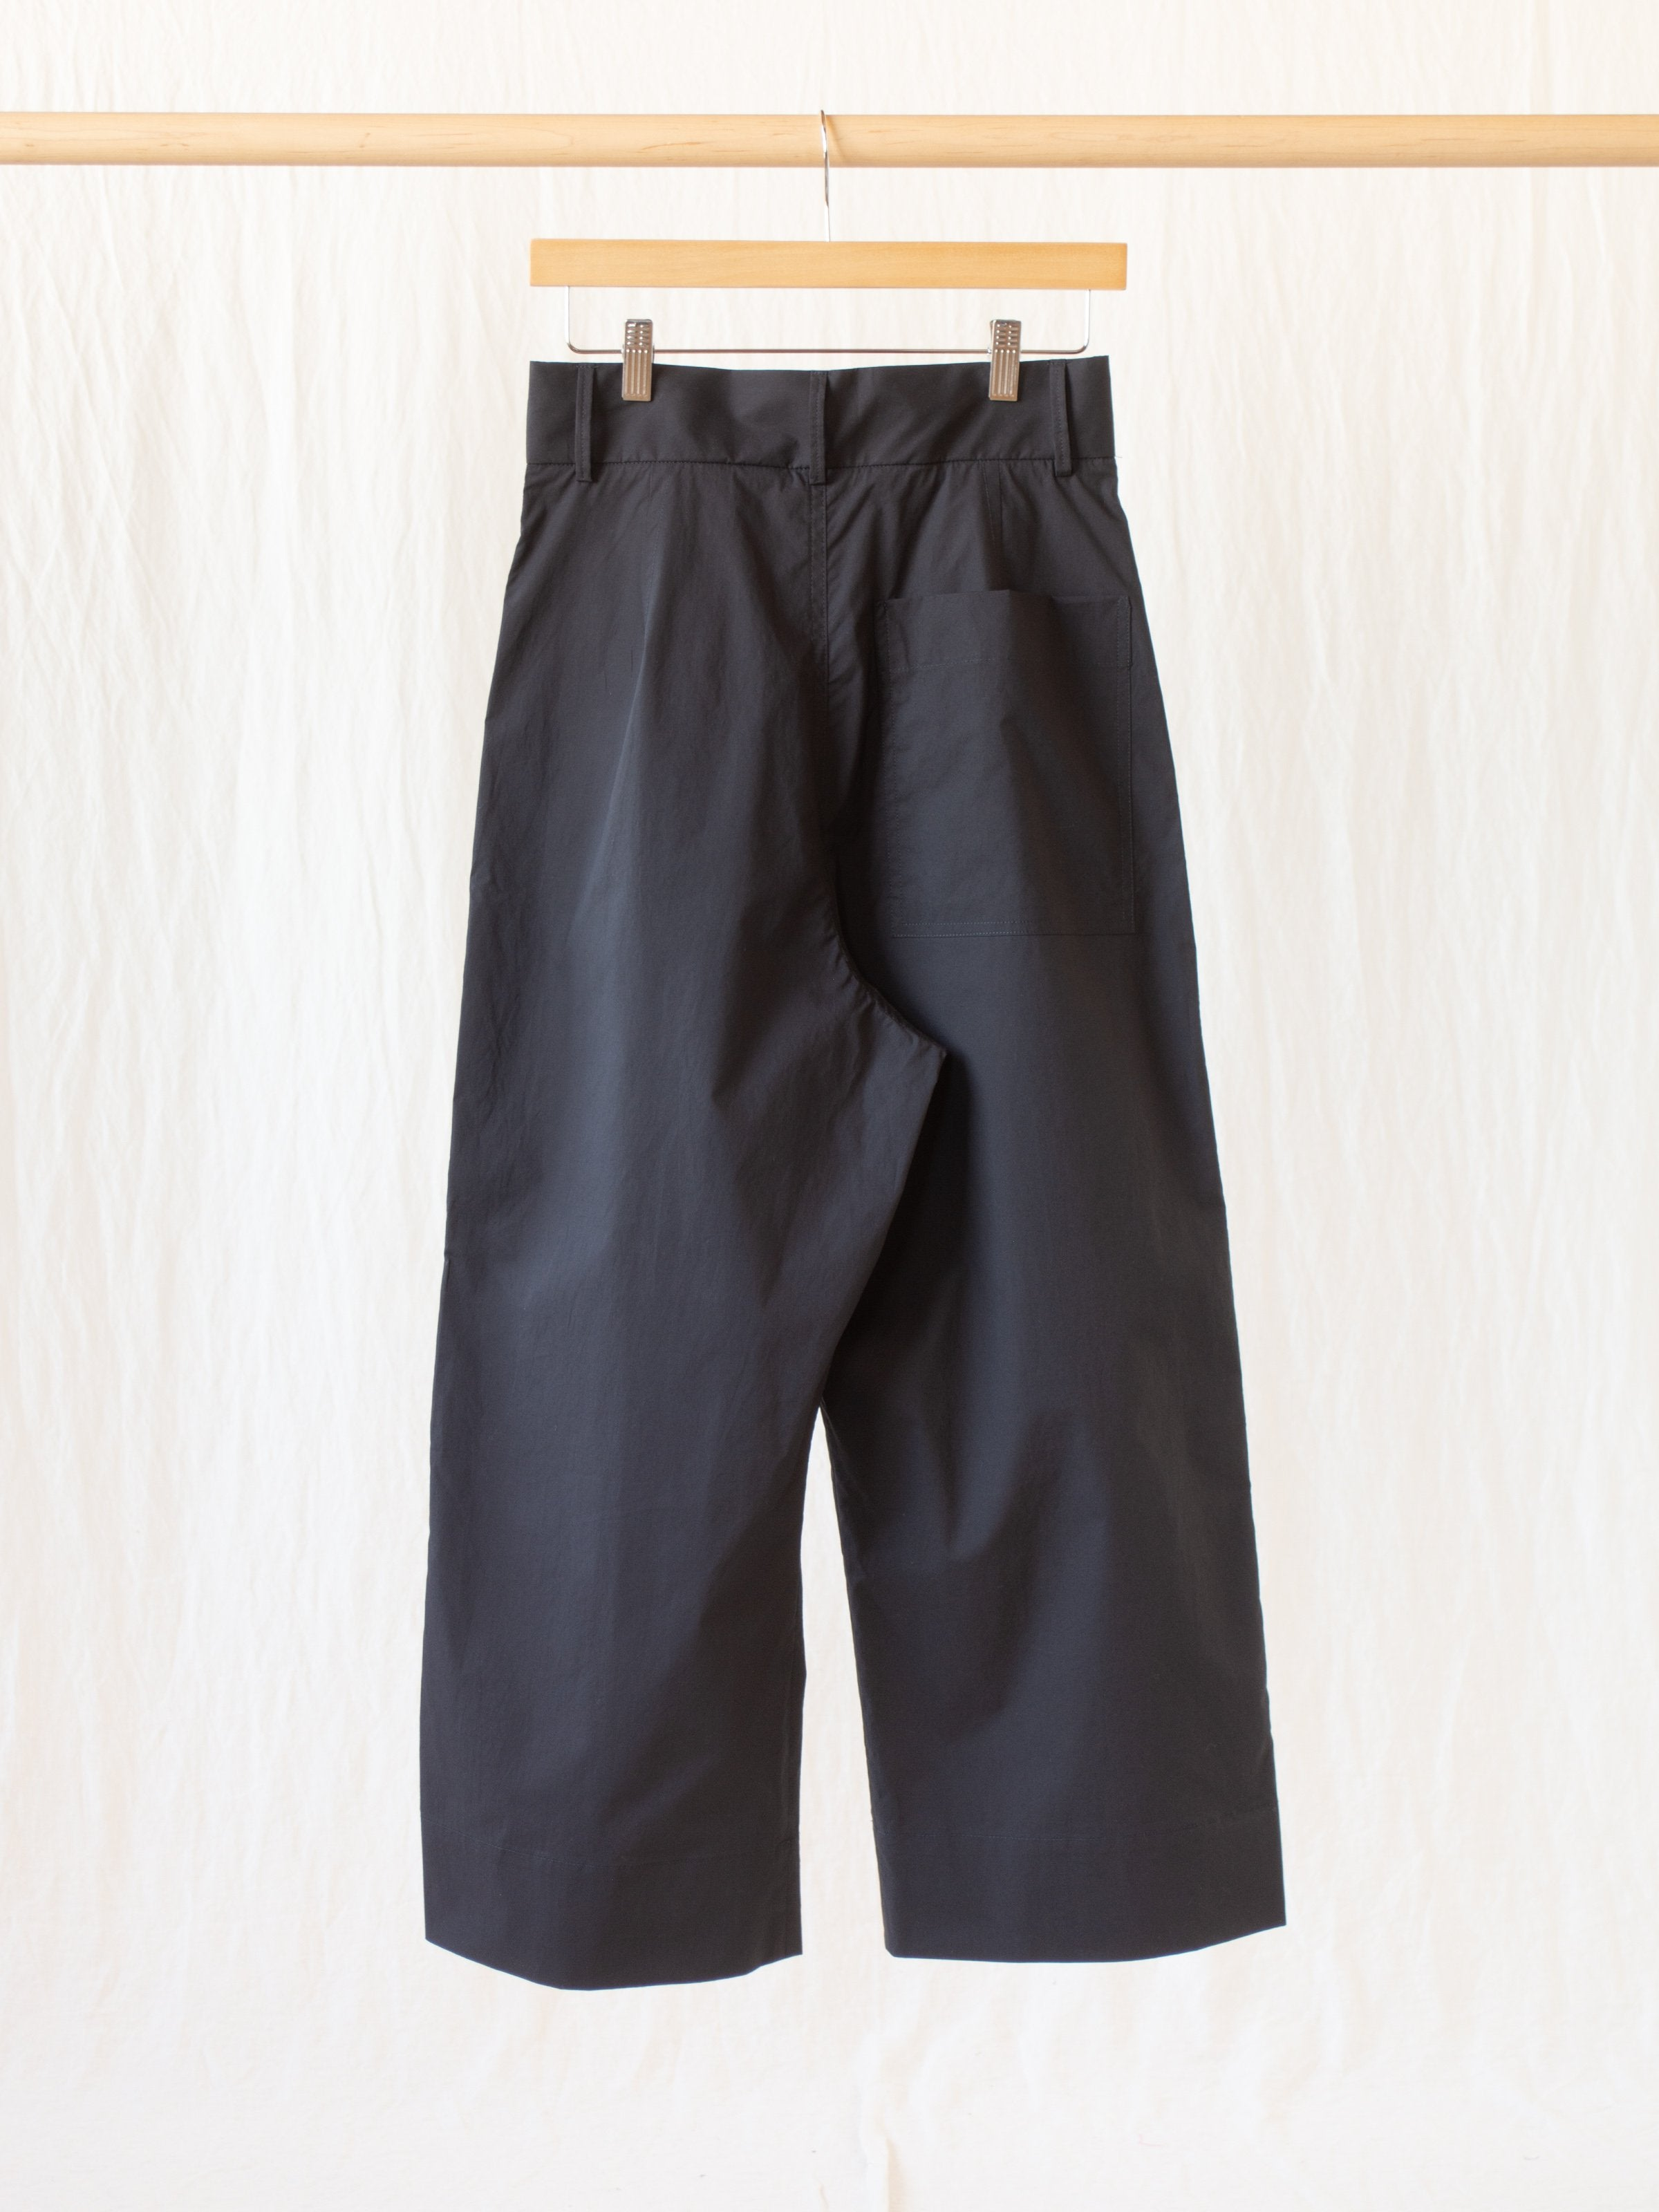 Namu Shop - Studio Nicholson Greta Pant - Black Extrafine Cotton